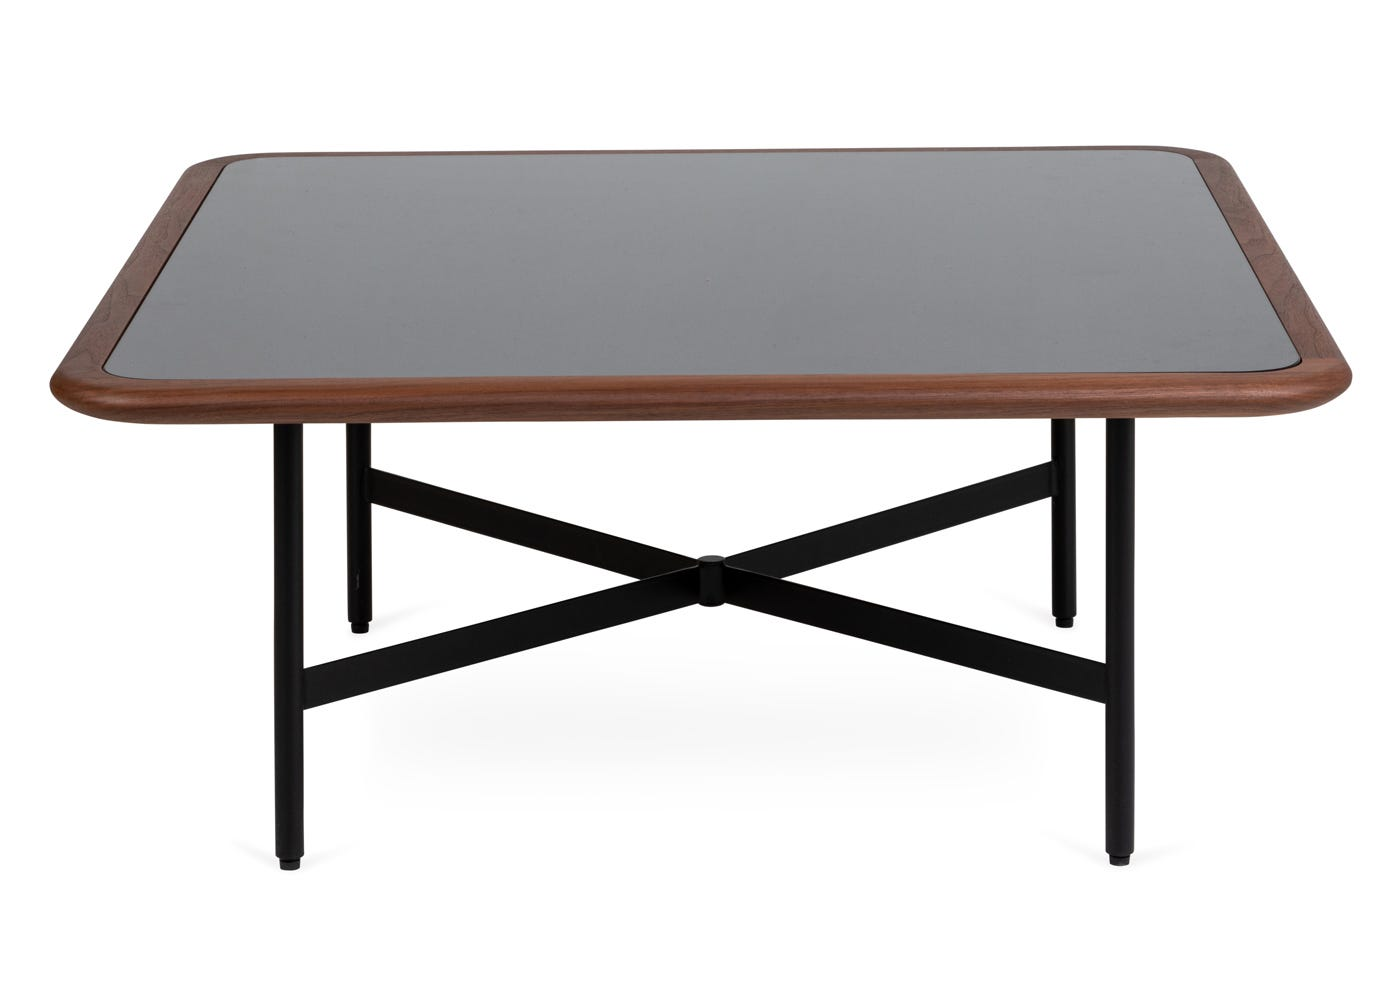 As shown: Emerson square coffee table - Front profile.